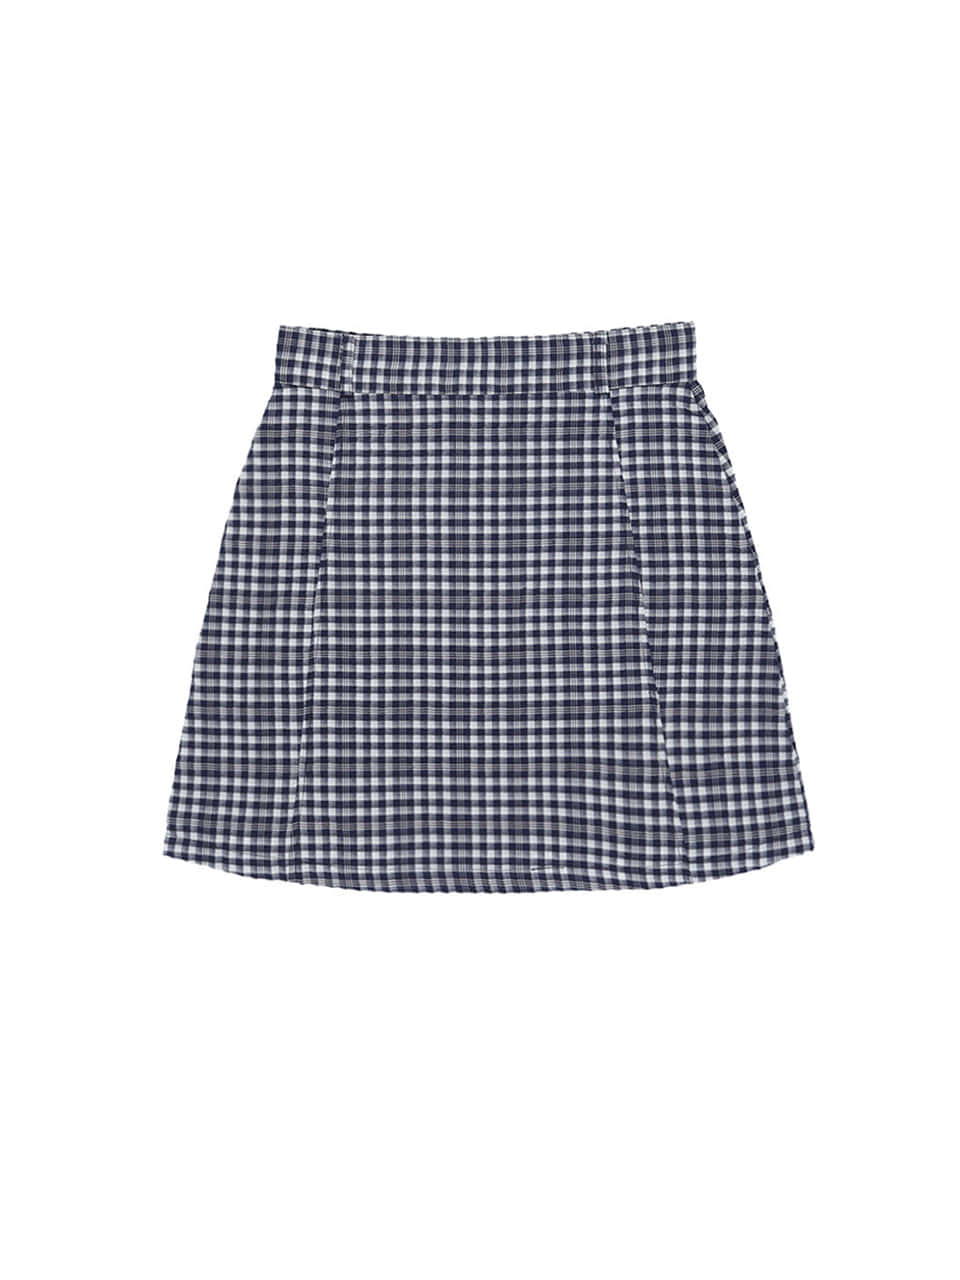 mgmg basic check skirt_navy